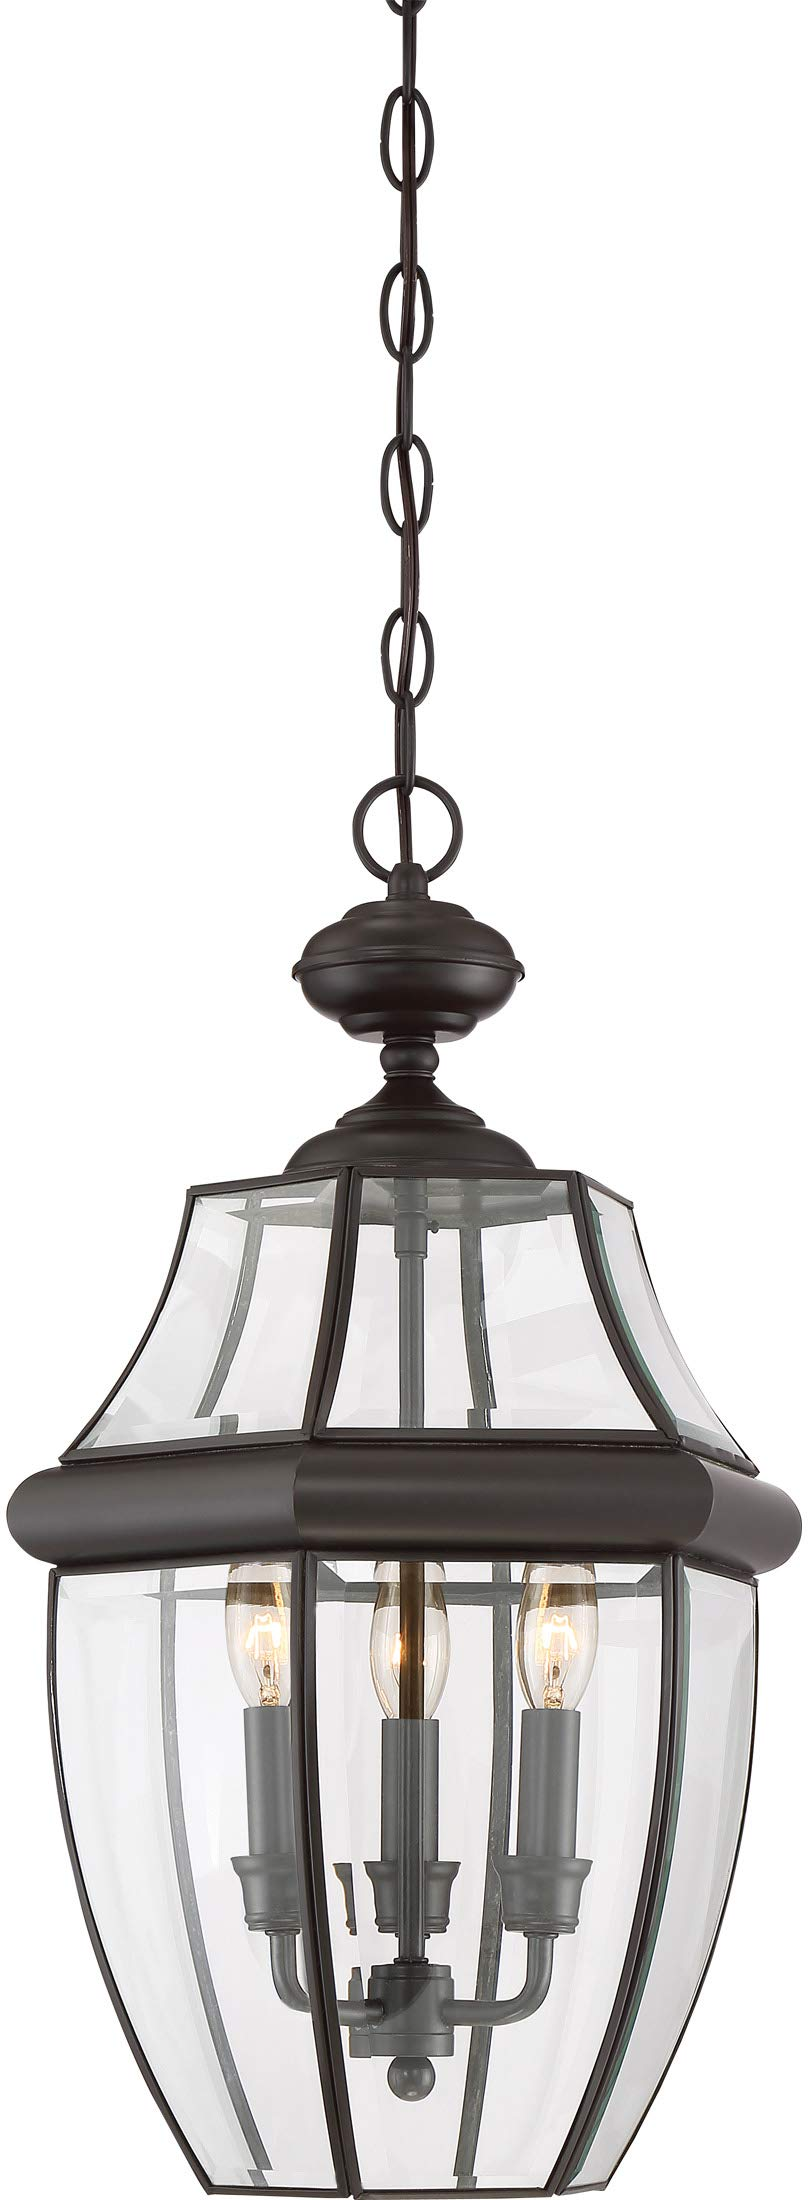 Quoizel NY1179Z Newbury Outdoor Pendant Lantern Ceiling Lighting, 3-Light, 180 Watts, Medici Bronze (21''H x 13''W) by Quoizel